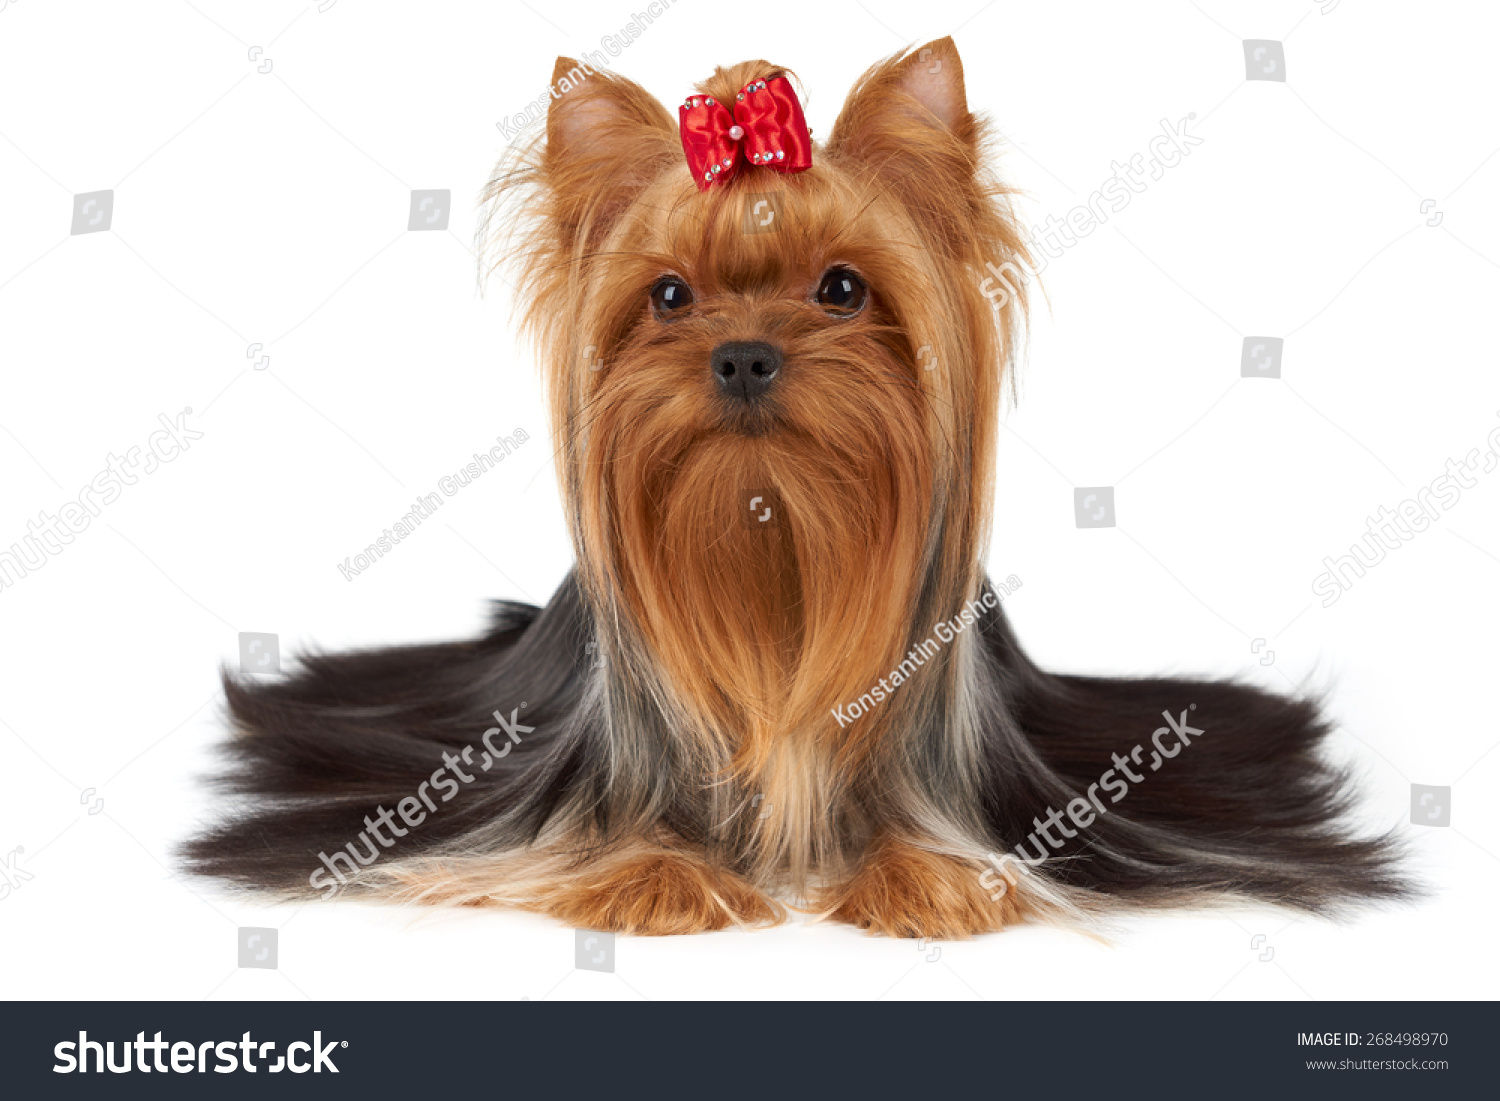 Long Yorkie Haircuts Yorkie Hairstjles Medium Length Male Yorkie